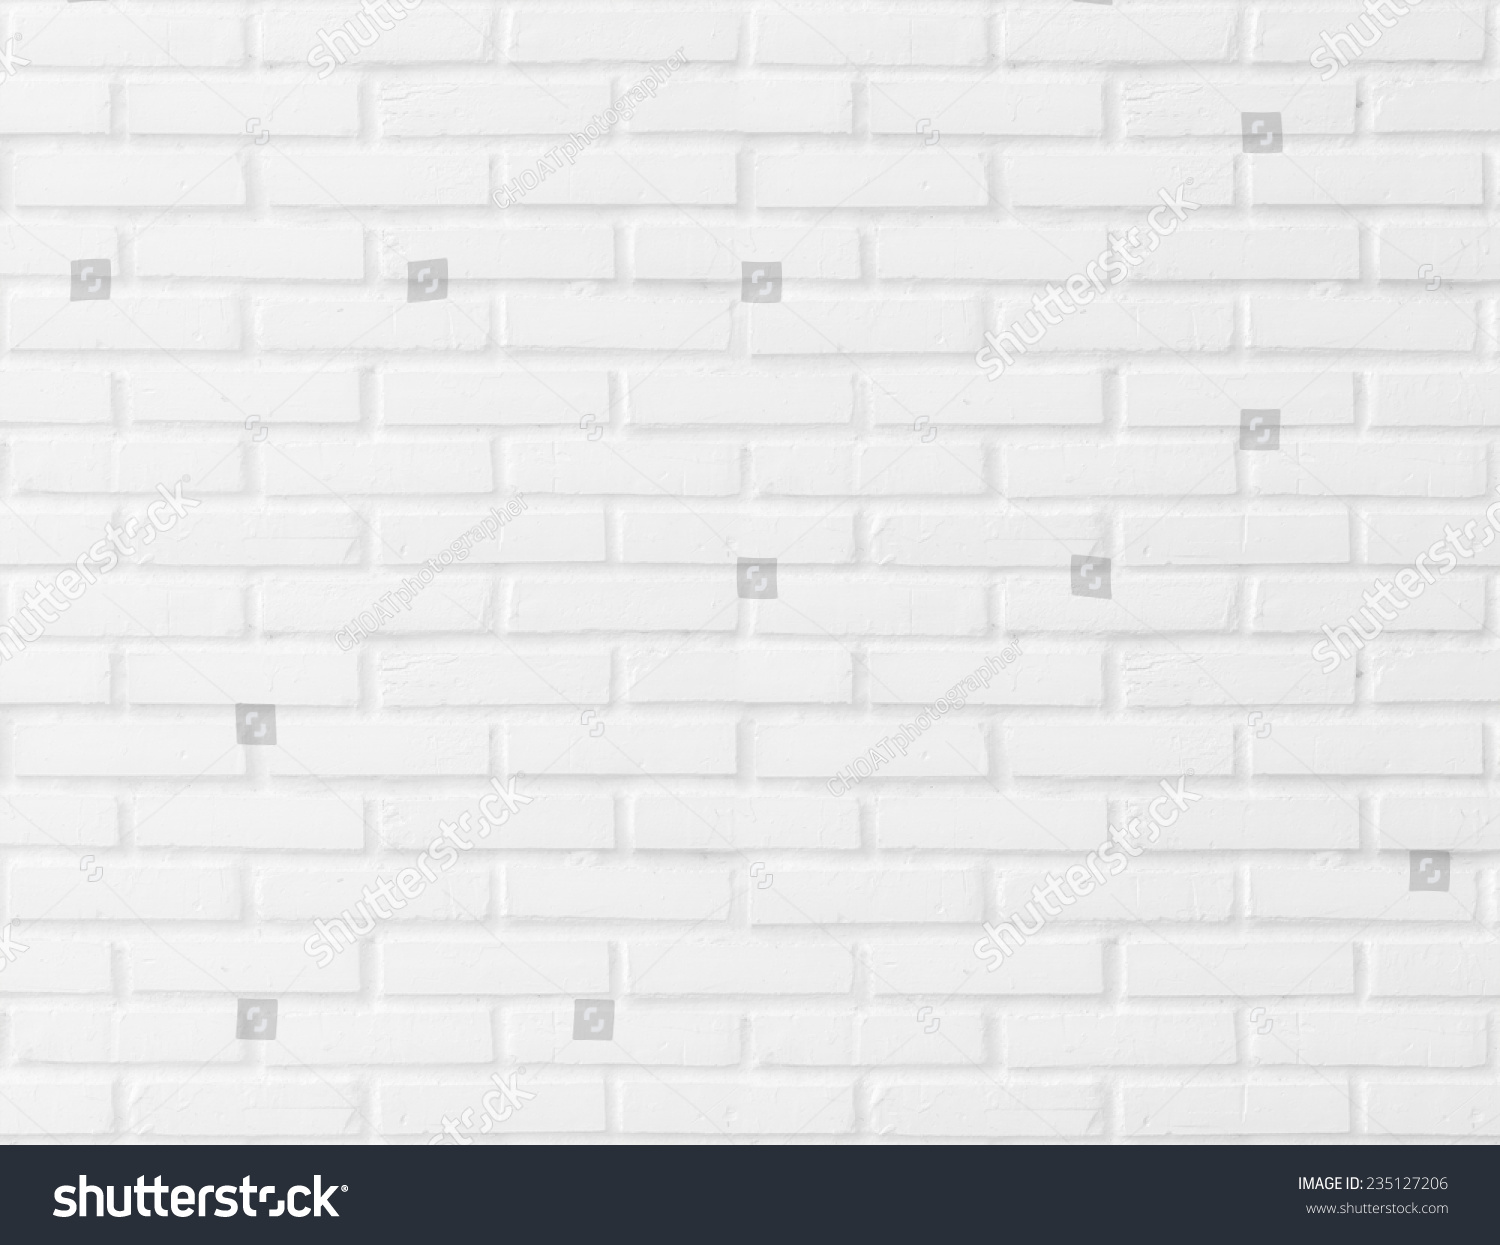 Vintage kitchen concept white ceramic tiles stock photo 235127206 vintage kitchen concept white ceramic tiles brick wall texture background dailygadgetfo Images